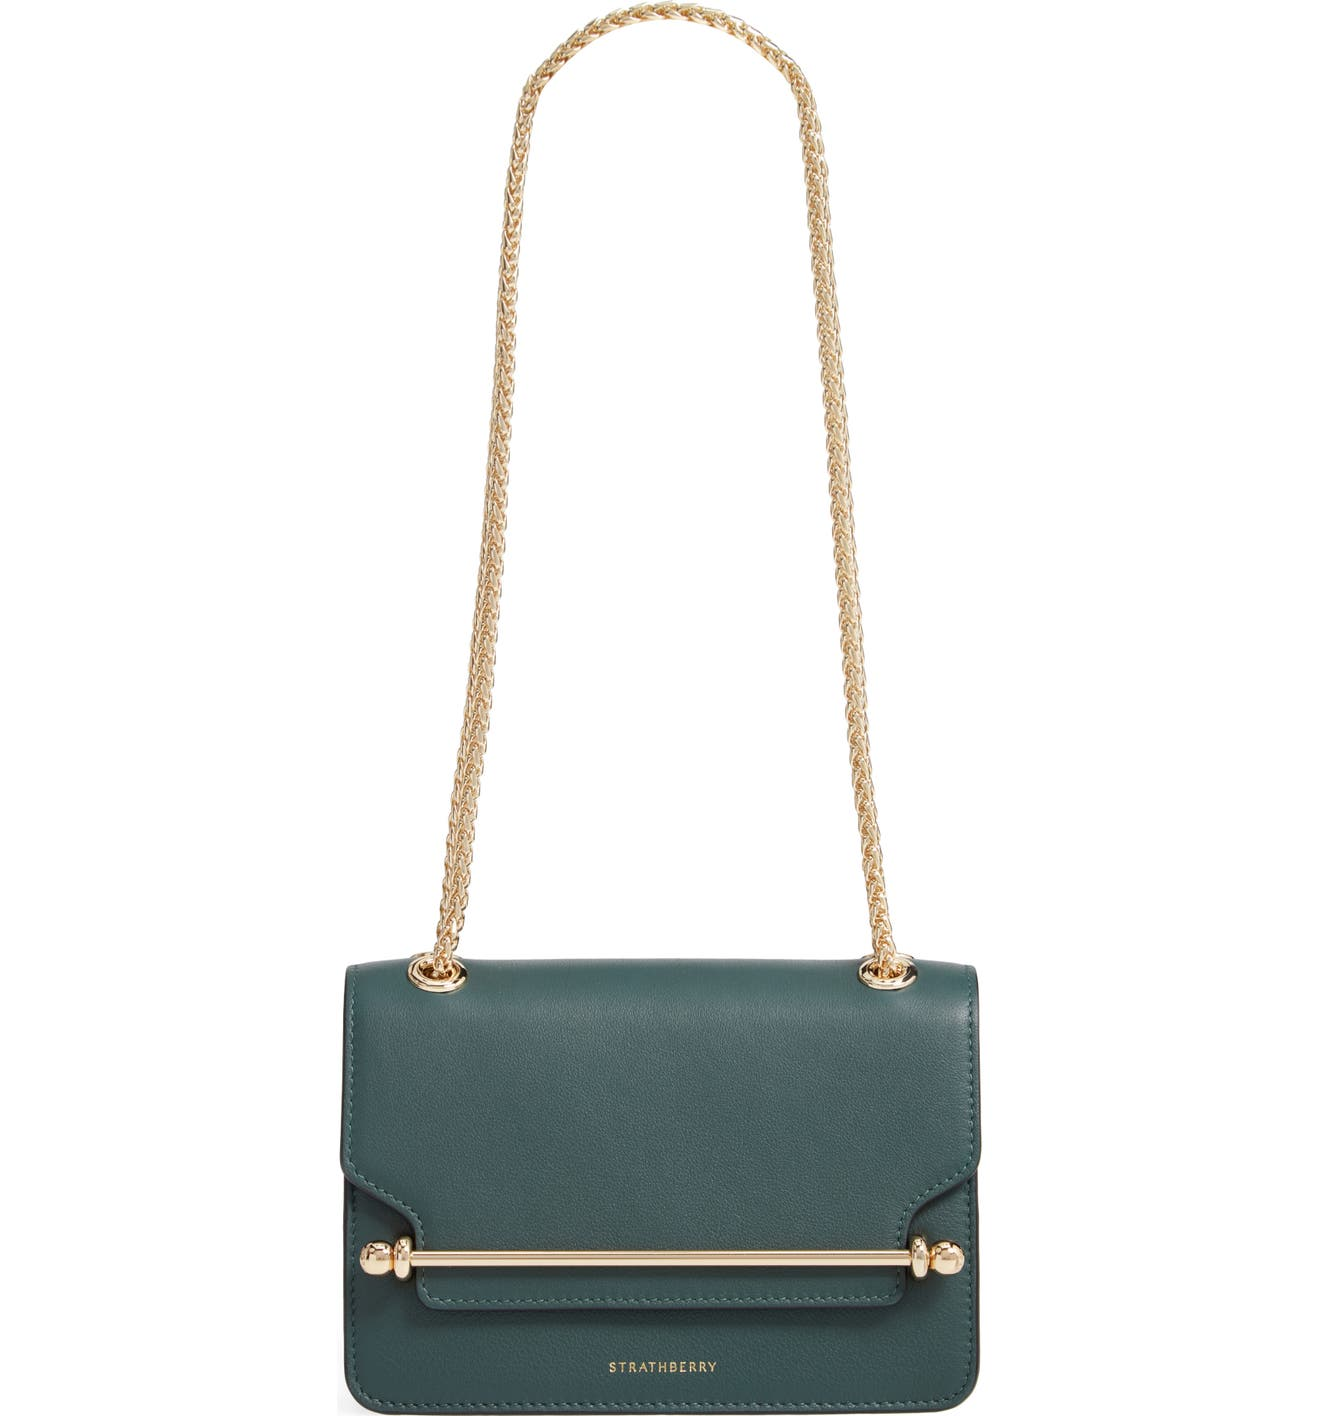 0ebb2518a665 Strathberry Mini East West Leather Crossbody Bag